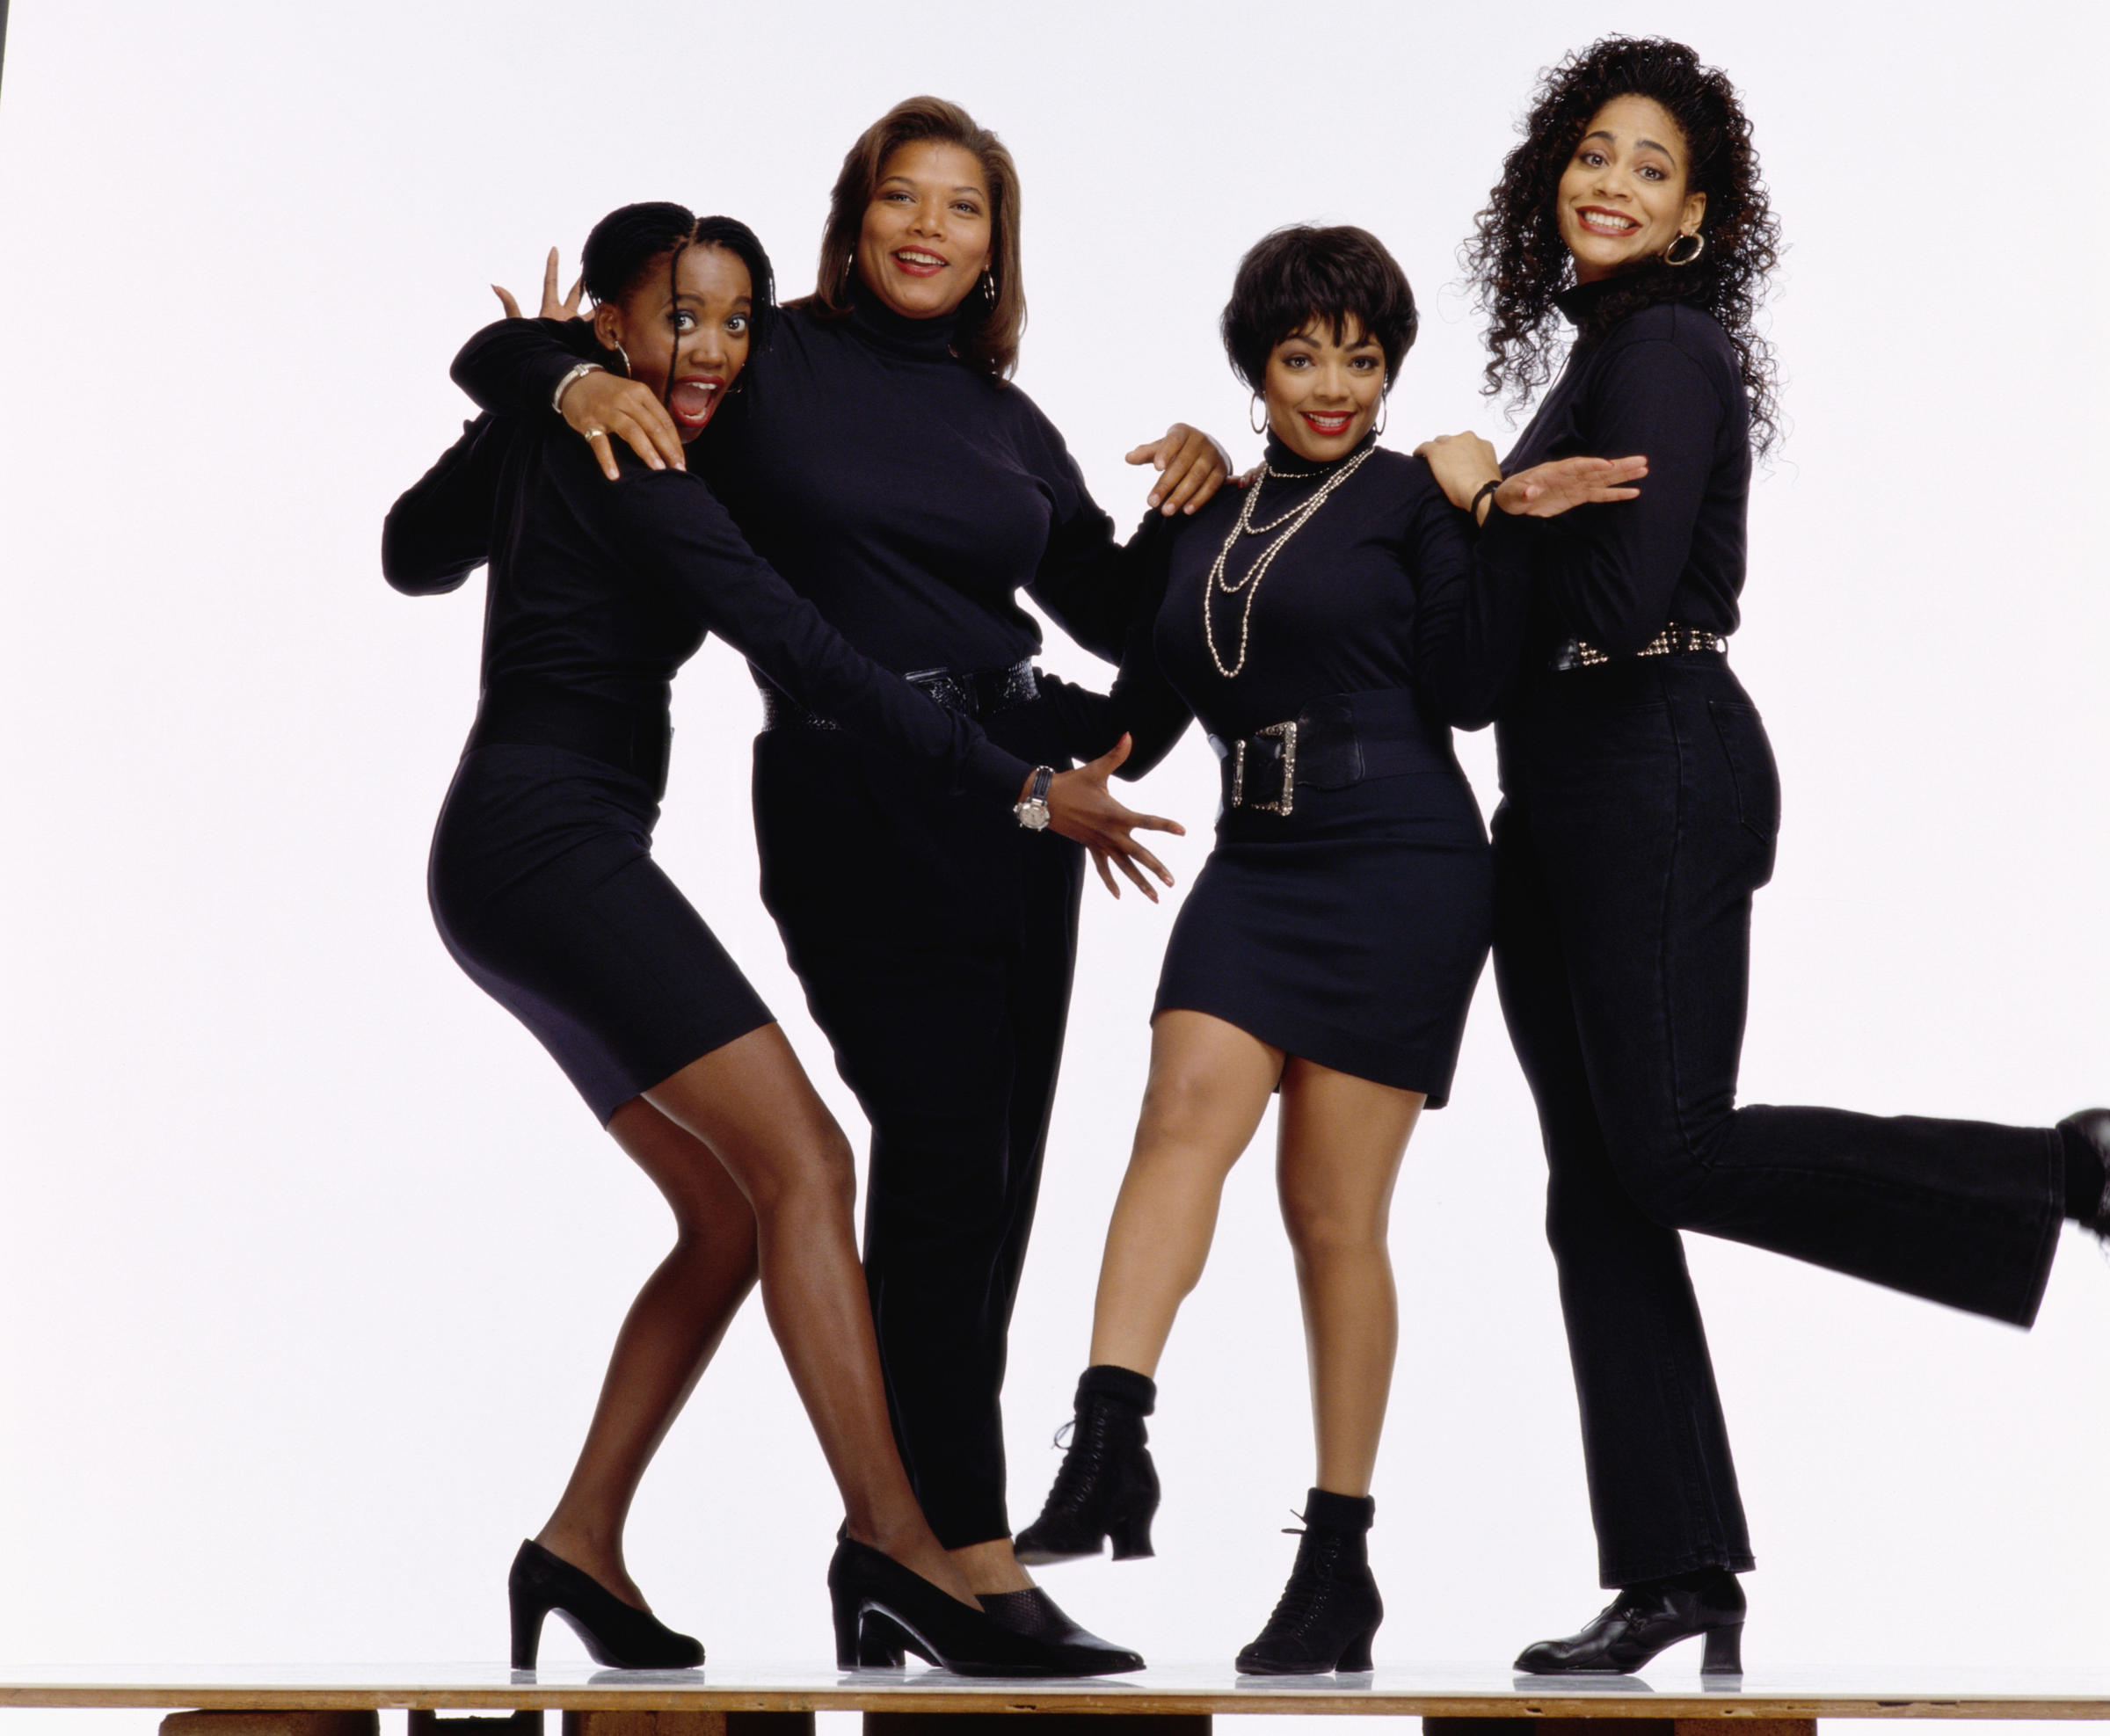 b3581fafc Living Single (1993-1998) featured four young, black, professional women in  New York — including Queen Latifah as the ambitious head of a small  magazine.